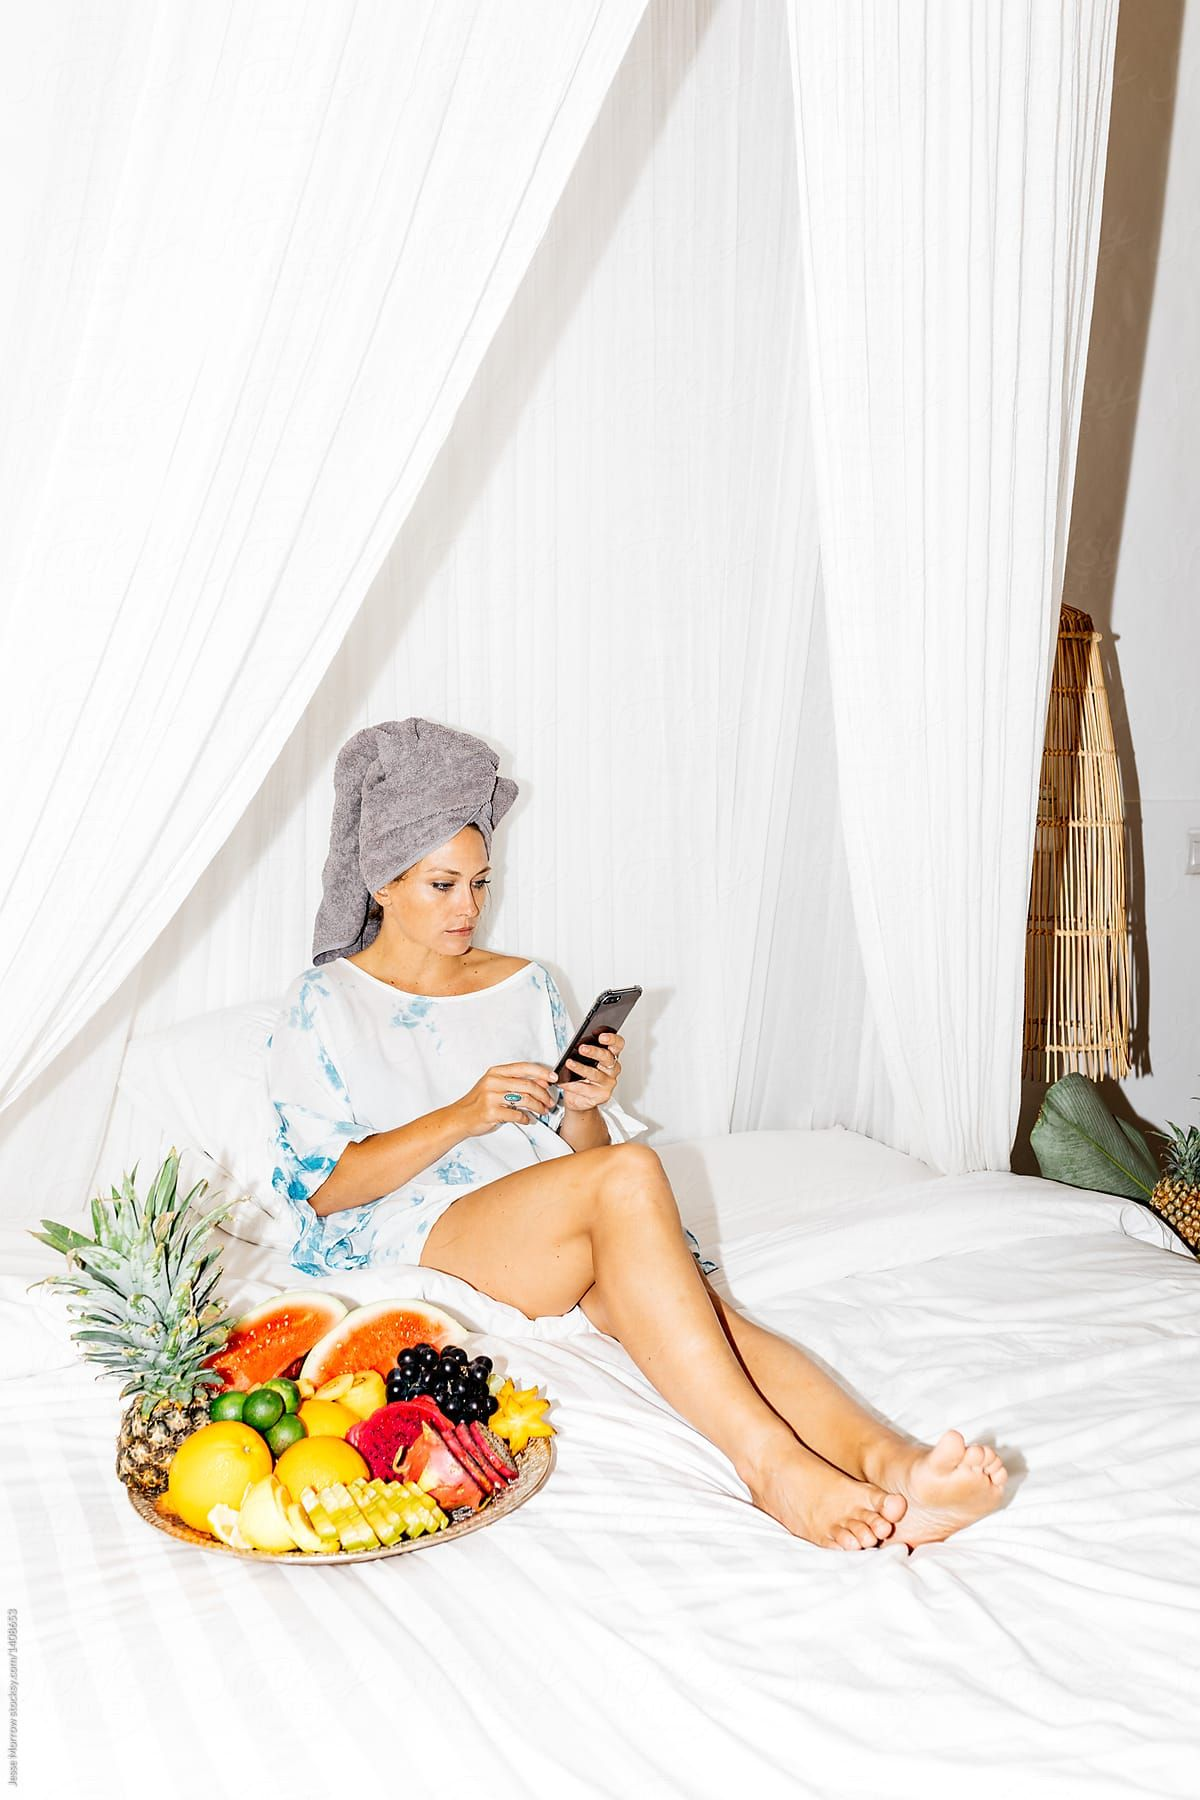 Young Adult Woman Sitting On Bed With Wet Hair And Towel On Head